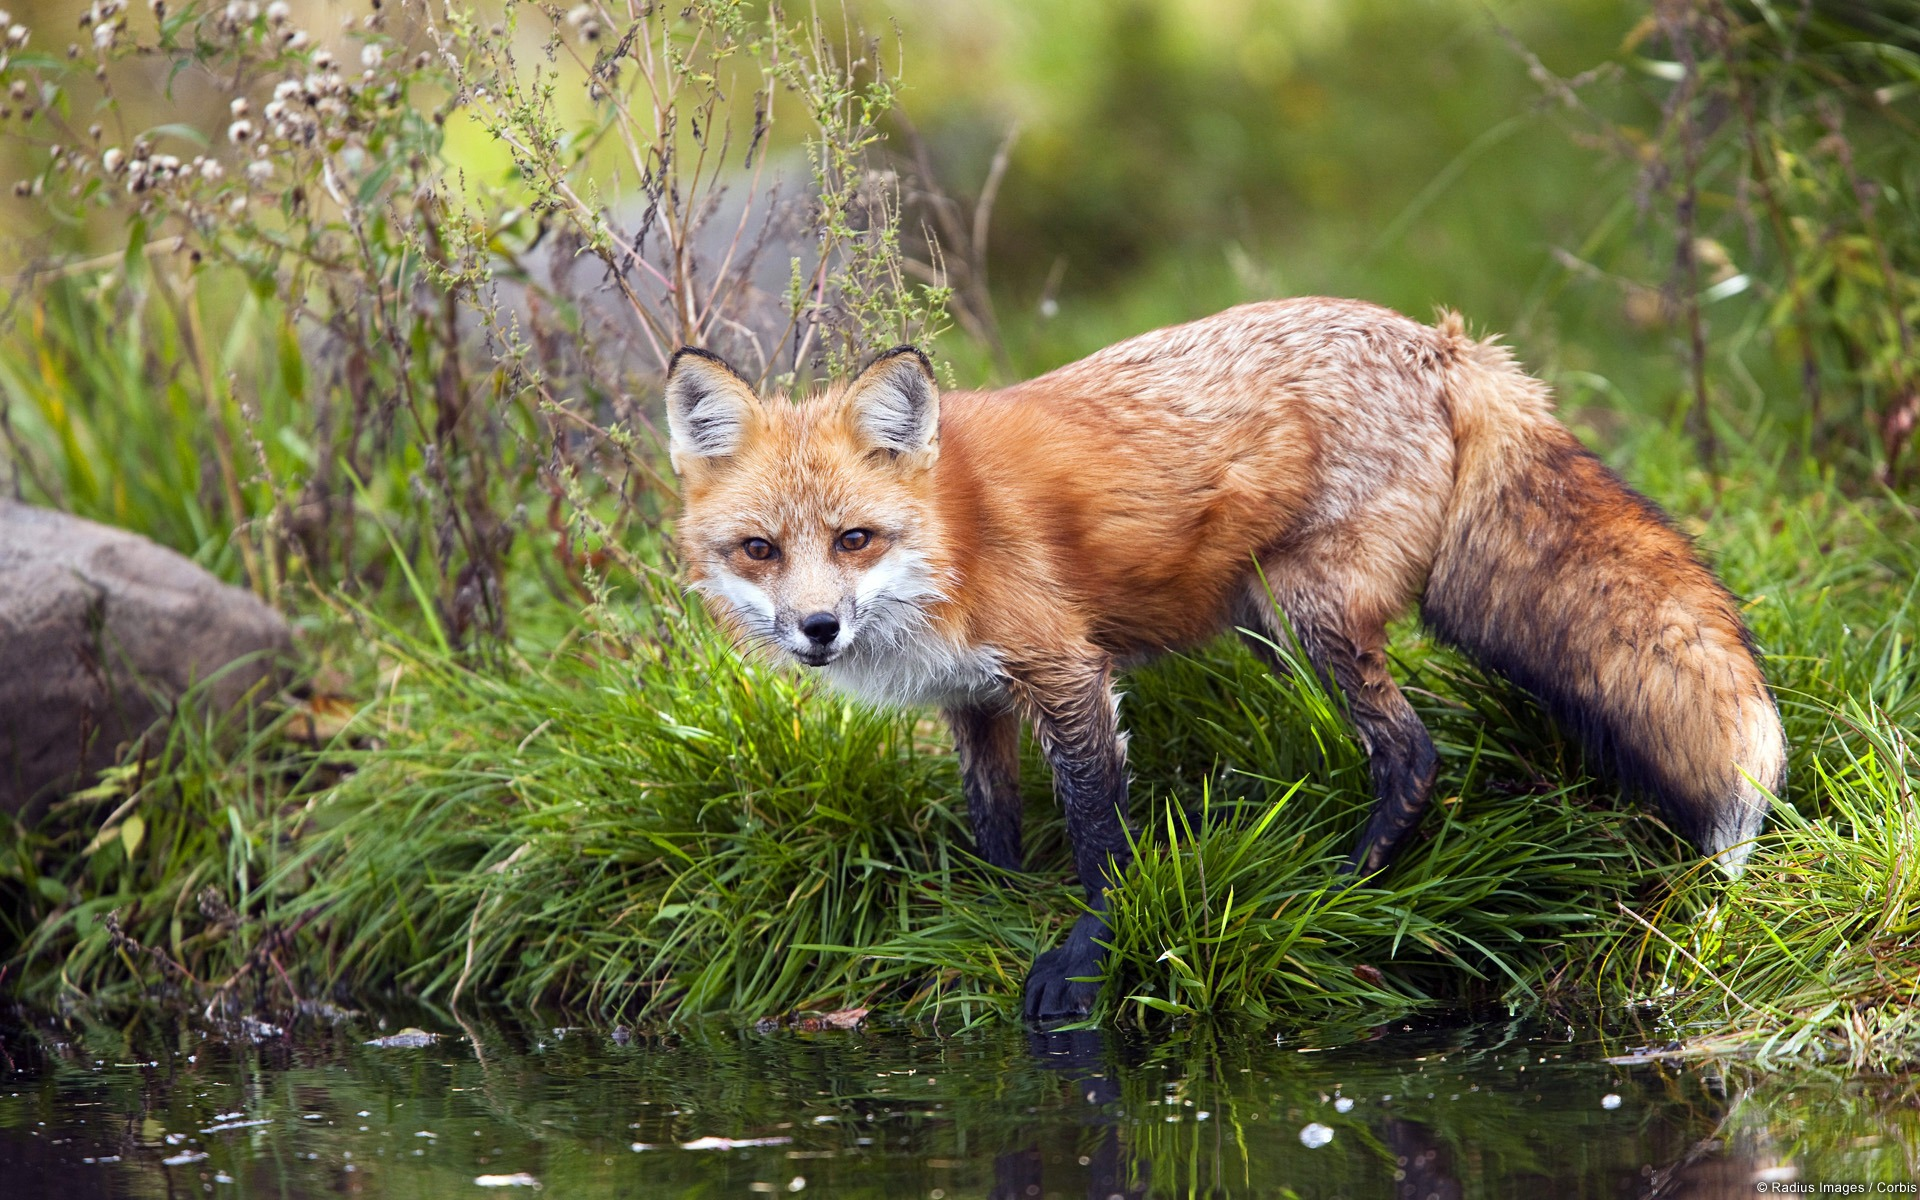 Red Fox Windows 10 Fondo De Pantalla Hd Avance 10wallpapercom